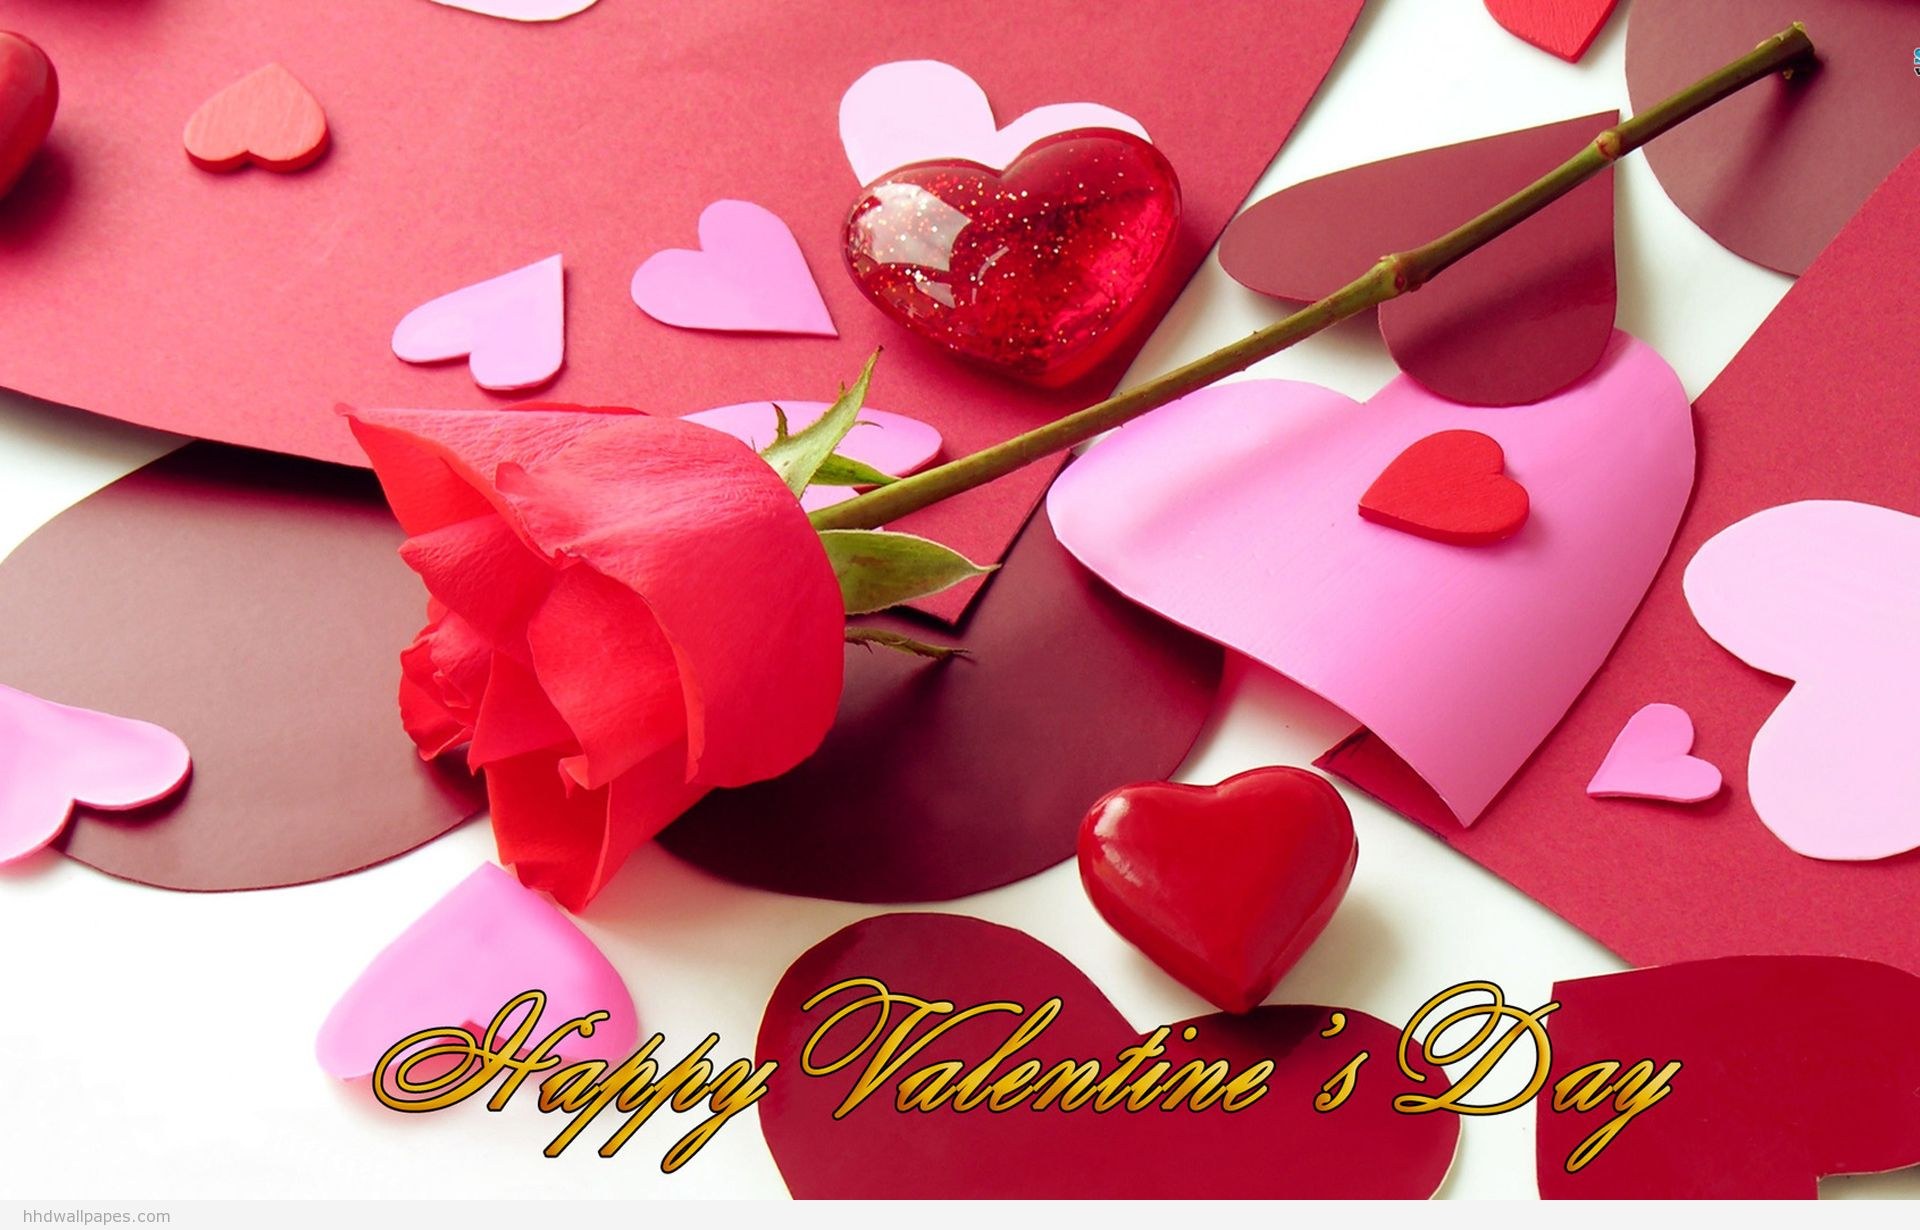 eventcombo u0027s guide to the 10 best free valentine u0027s day events in